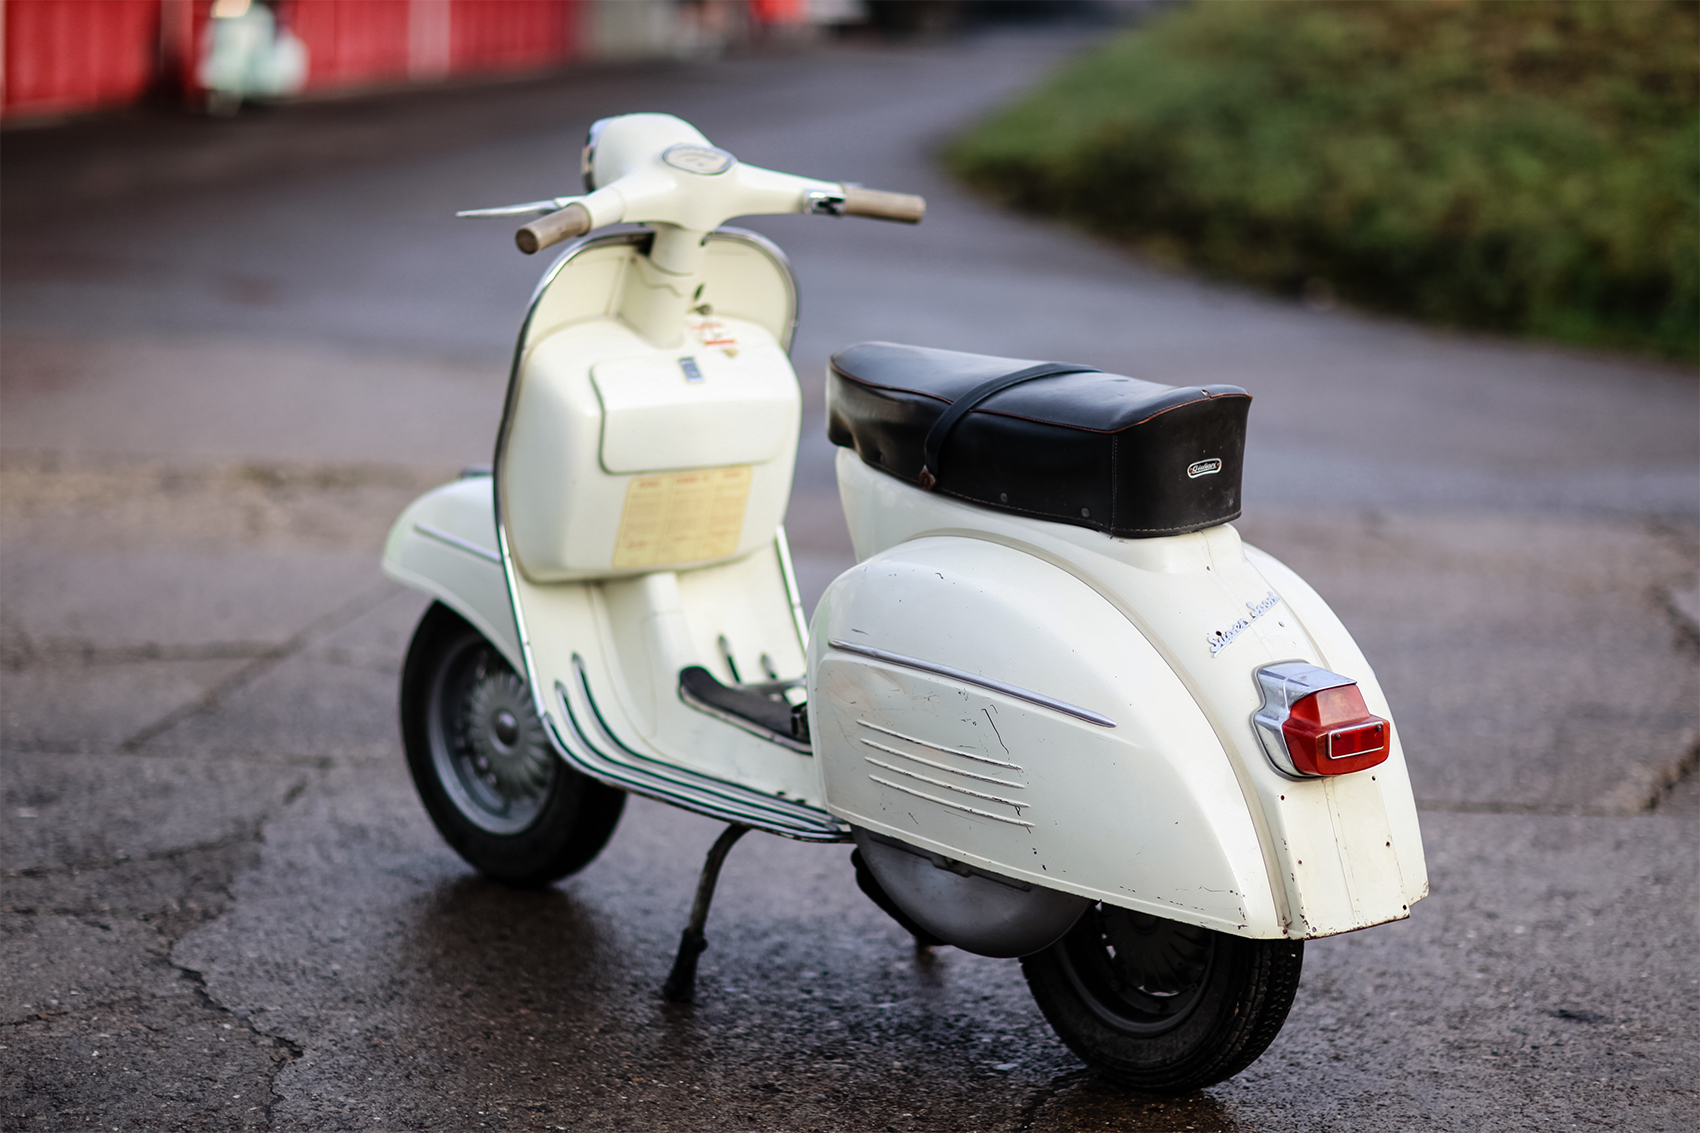 http://simonknecht.files.wordpress.com/2015/01/vespa-180ss_28.jpg